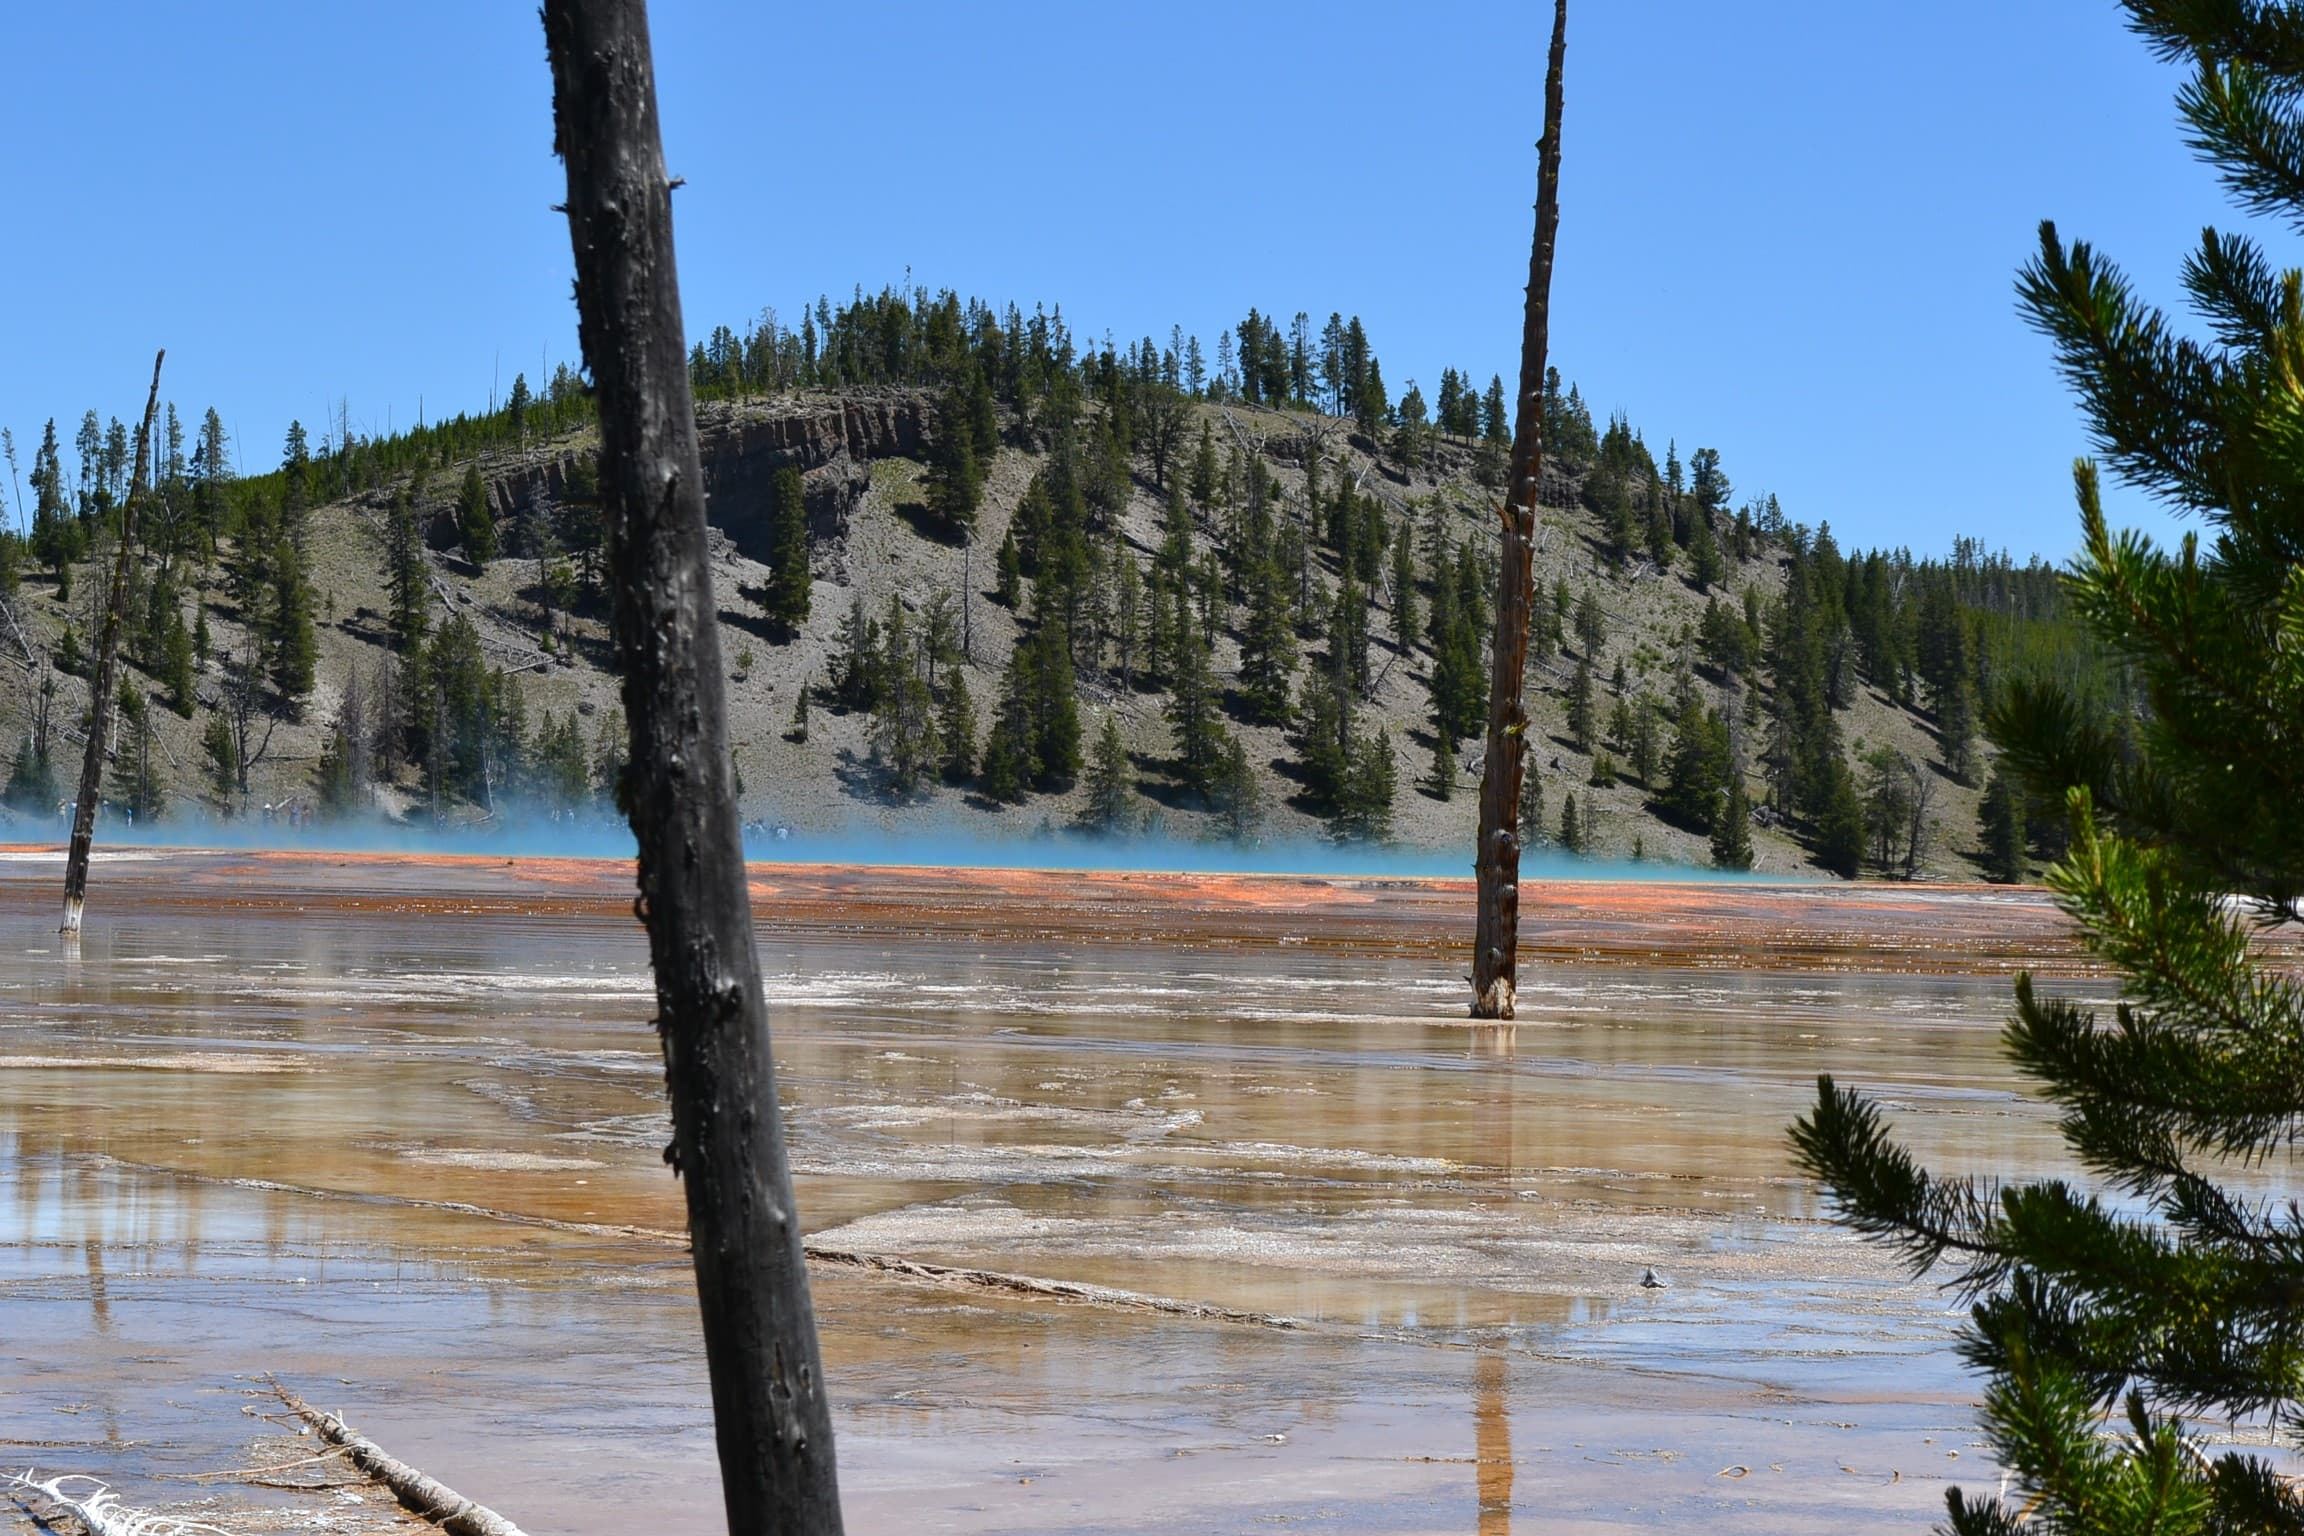 Dead trees in a thermal area of Yellowstone.